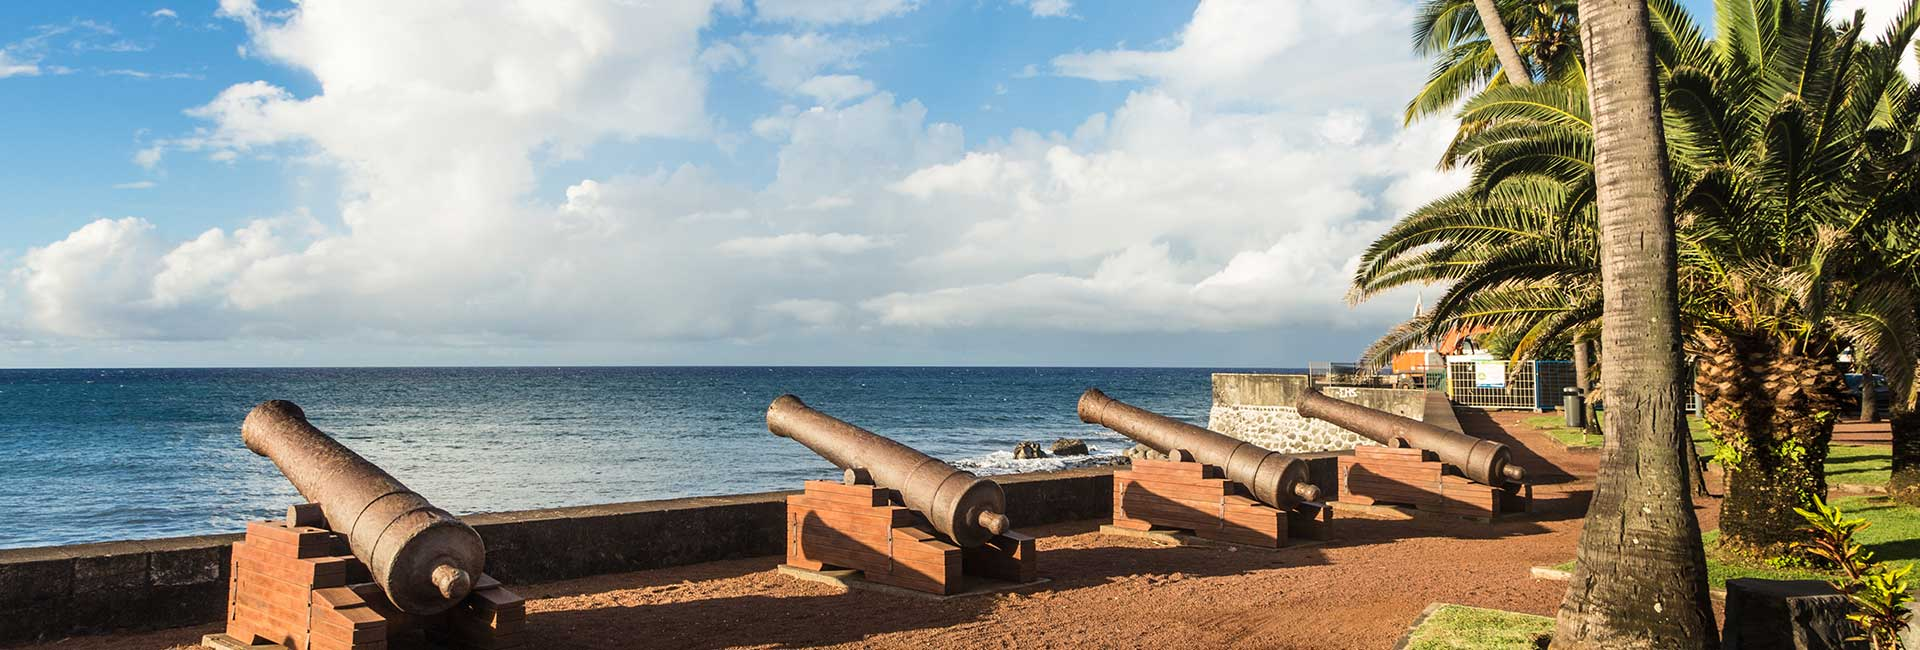 Canons on beach